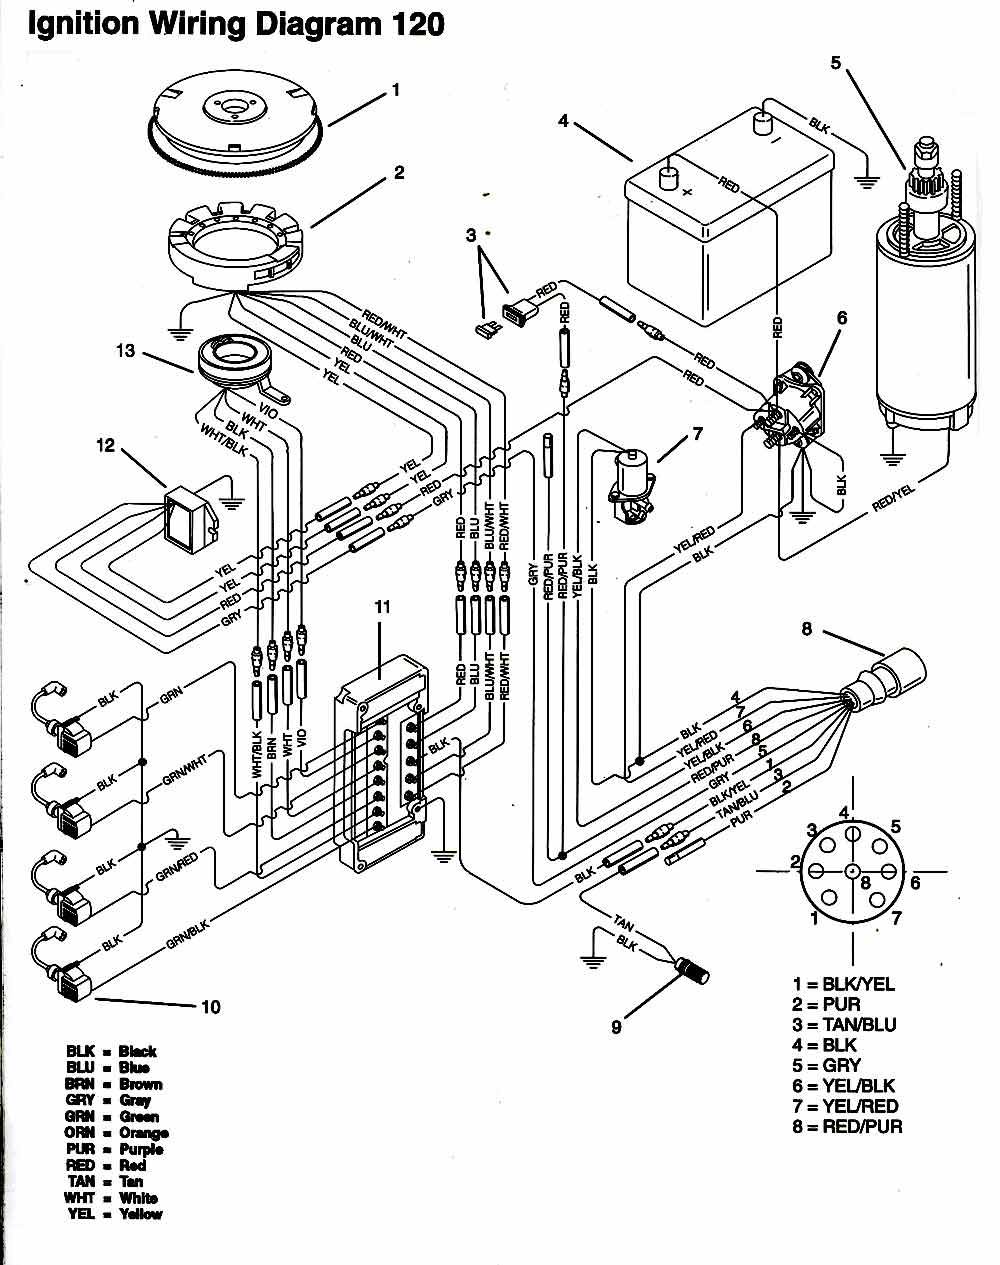 1996 Force Outboard Engine Diagram - Wiring Diagram General